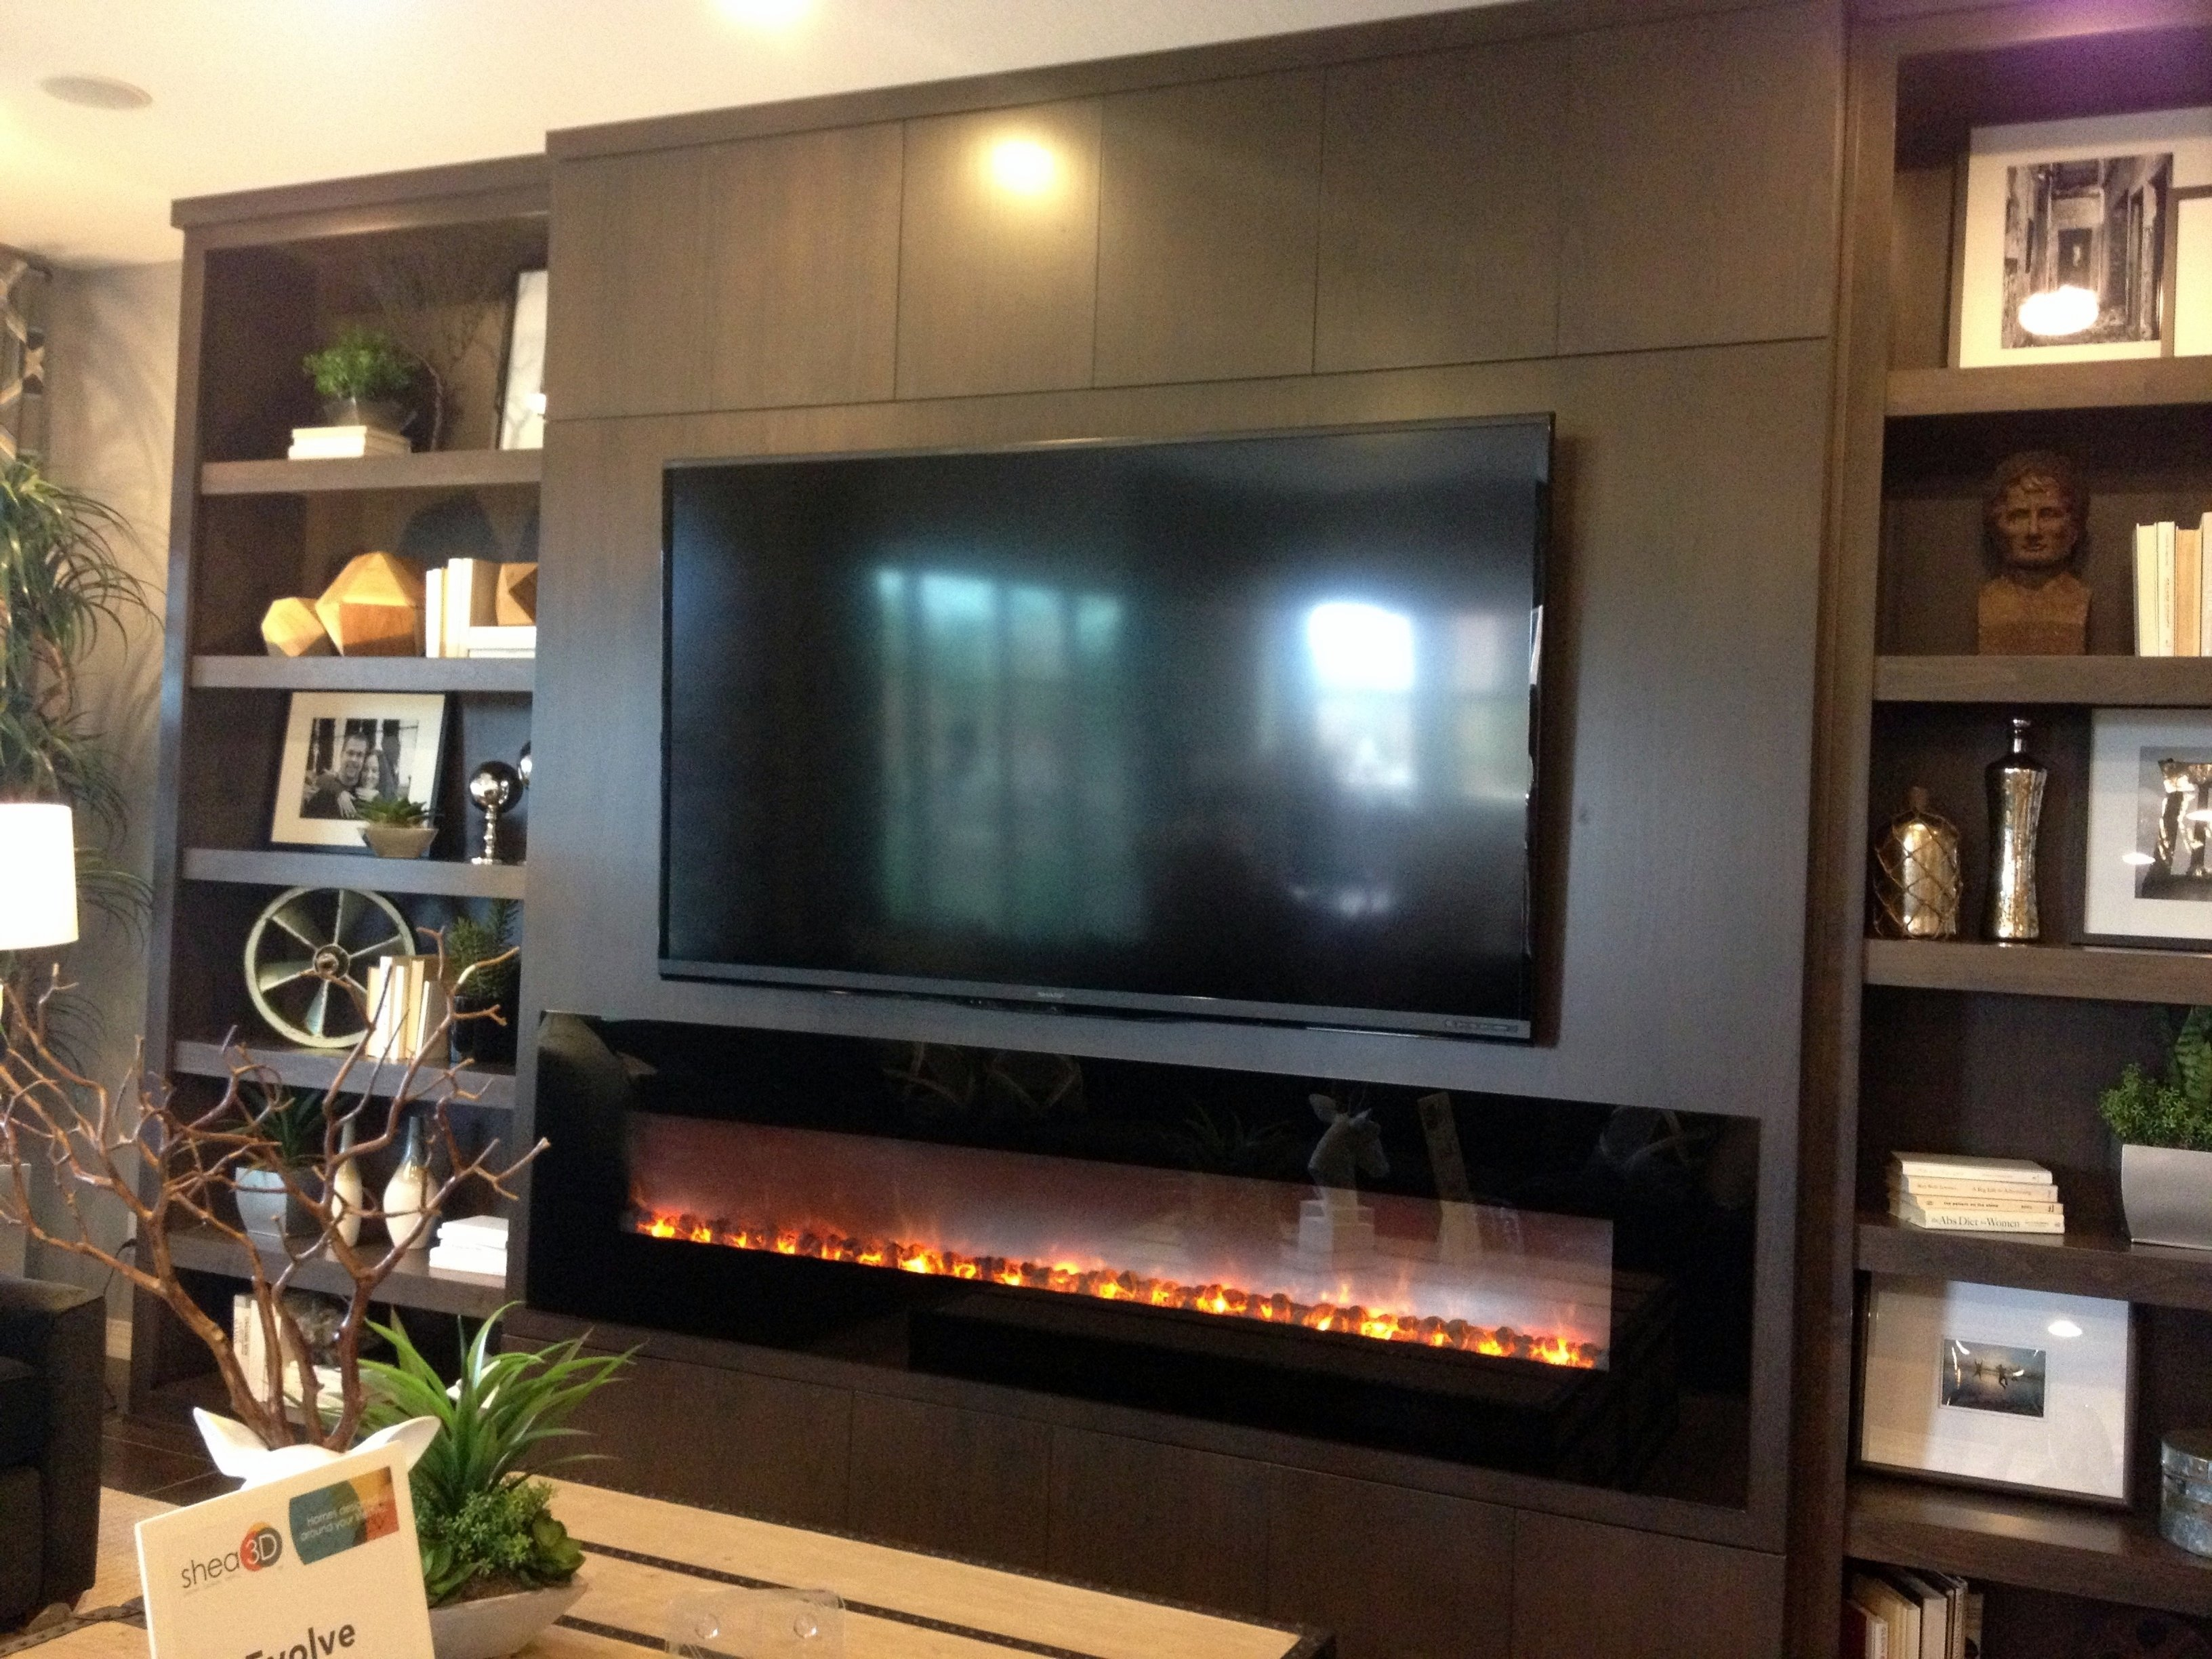 10 Awesome Built In Entertainment Center Ideas 15 entertainment center with fireplace ideas selection page 2 of 3